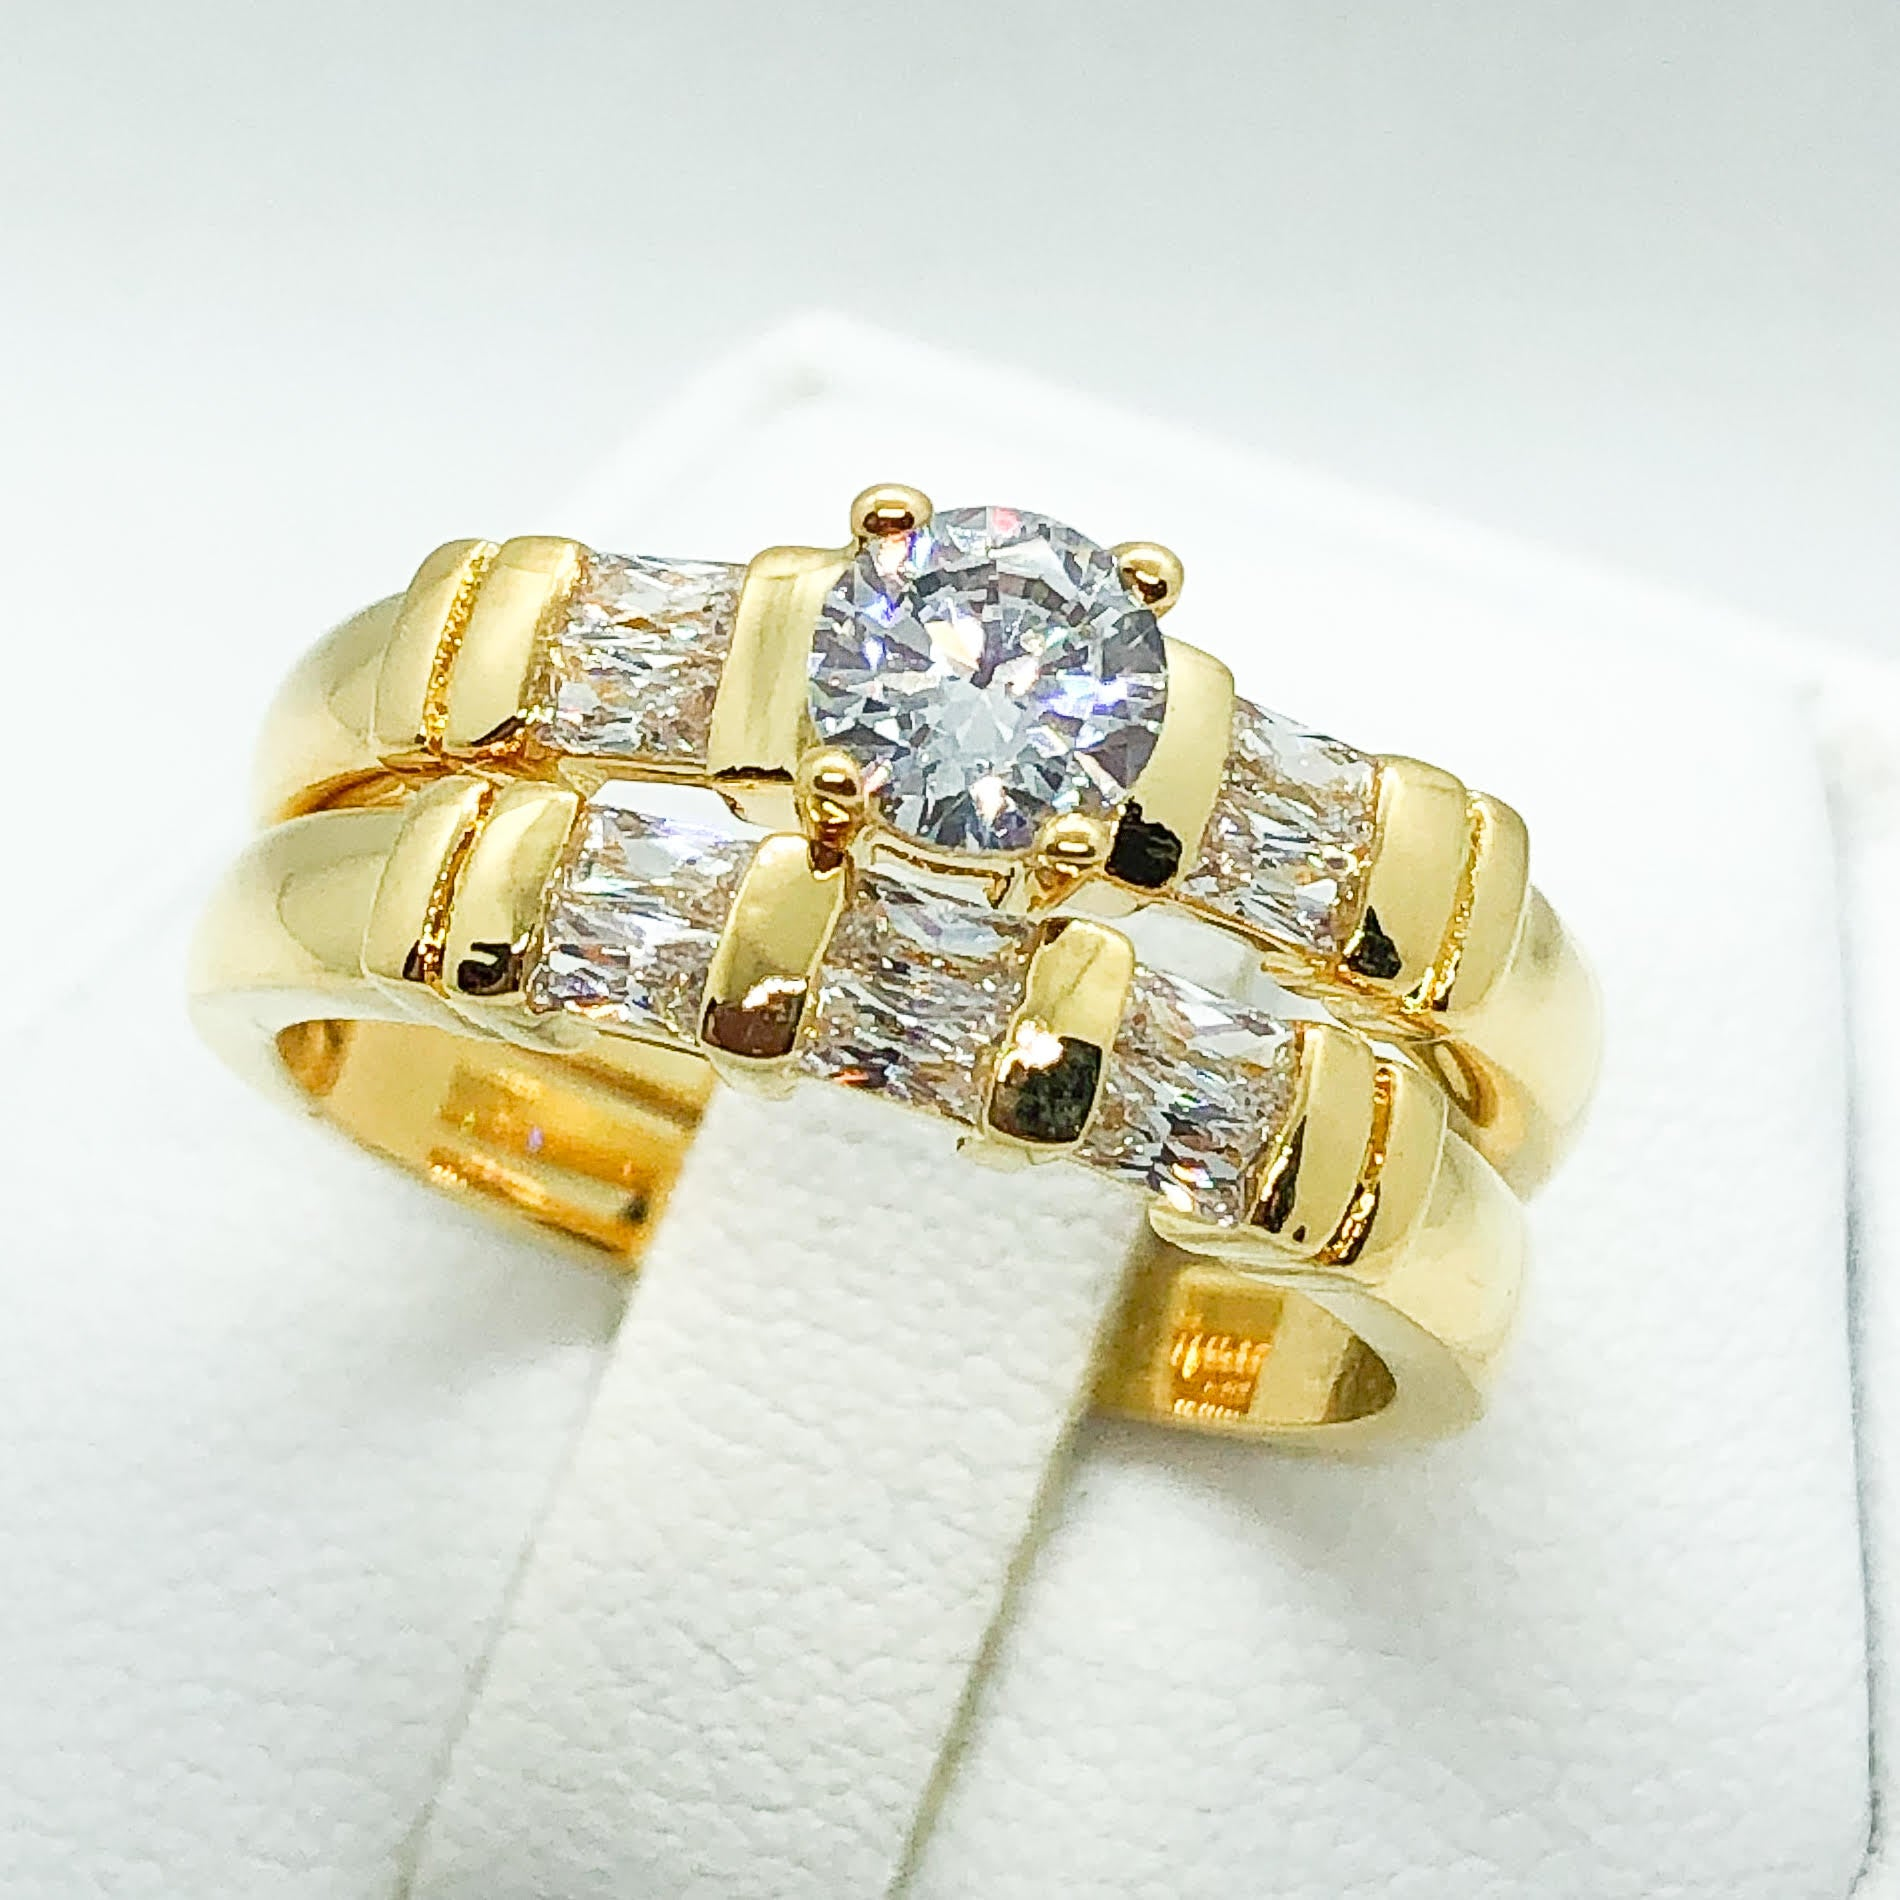 ID:R3585 Women Vintage Jewelry 18K Yellow Gold GF Good-Looking Engagement Wedding Bridal Diamonique Band Ring 2pcs/Set